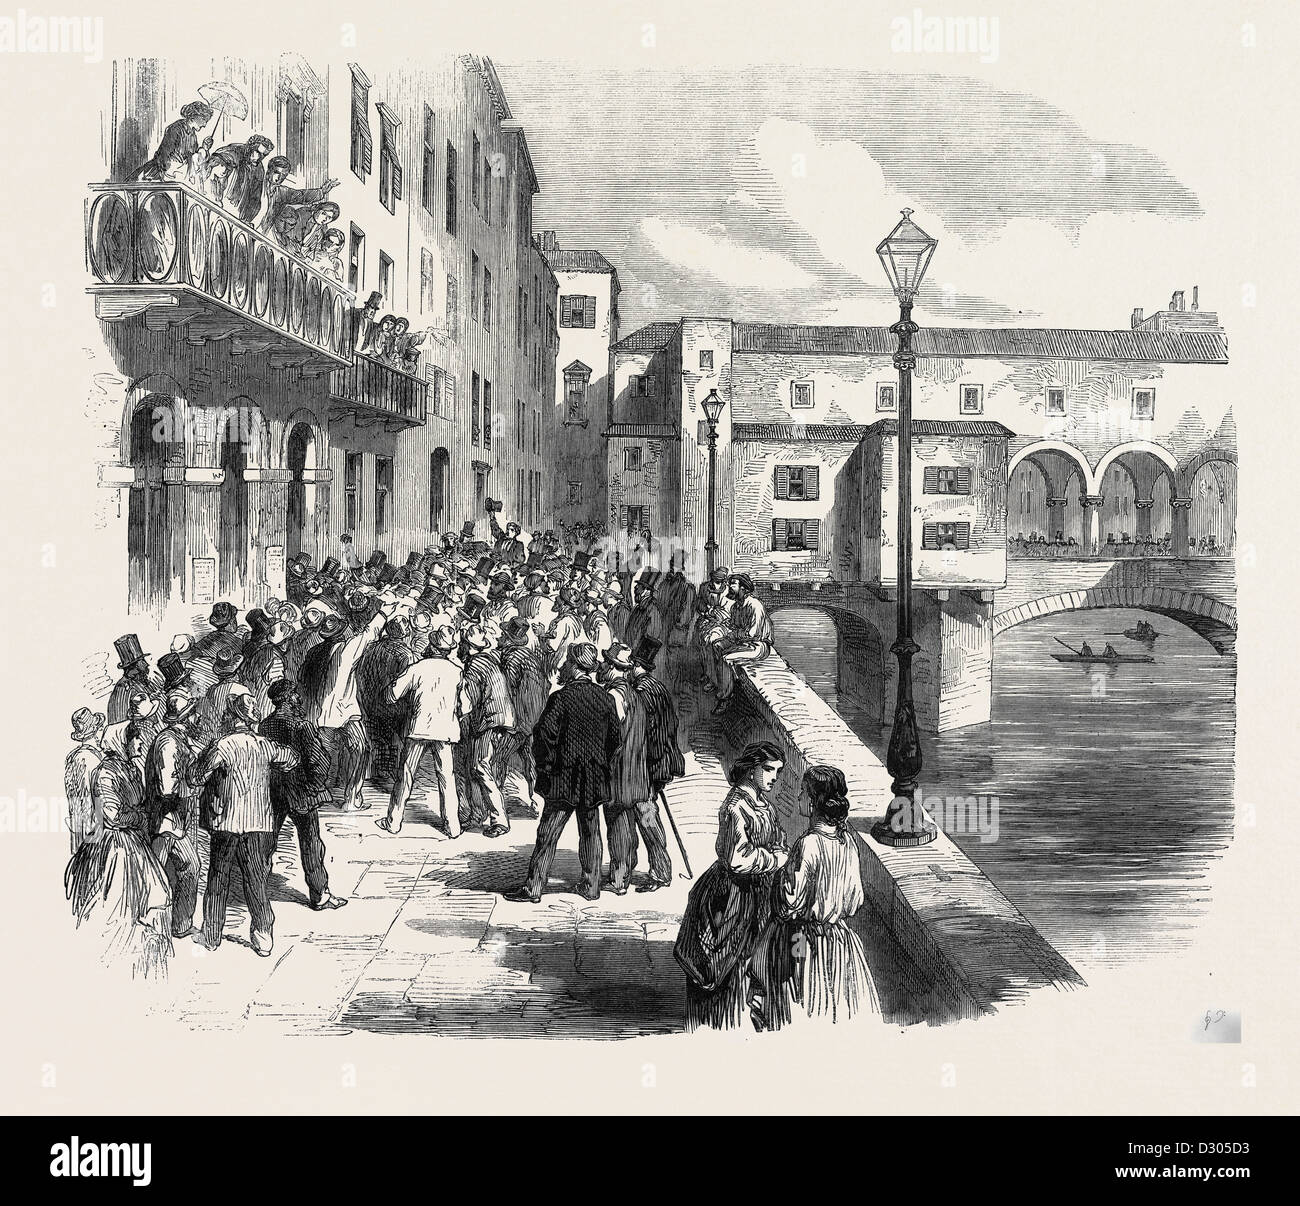 THE IMPENDING WAR (THE AUSTRO-PRUSSIAN WAR): VOLUNTEERS FOR GARIBALDI A SCENE IN FLORENCE ITALY 1866 - Stock Image